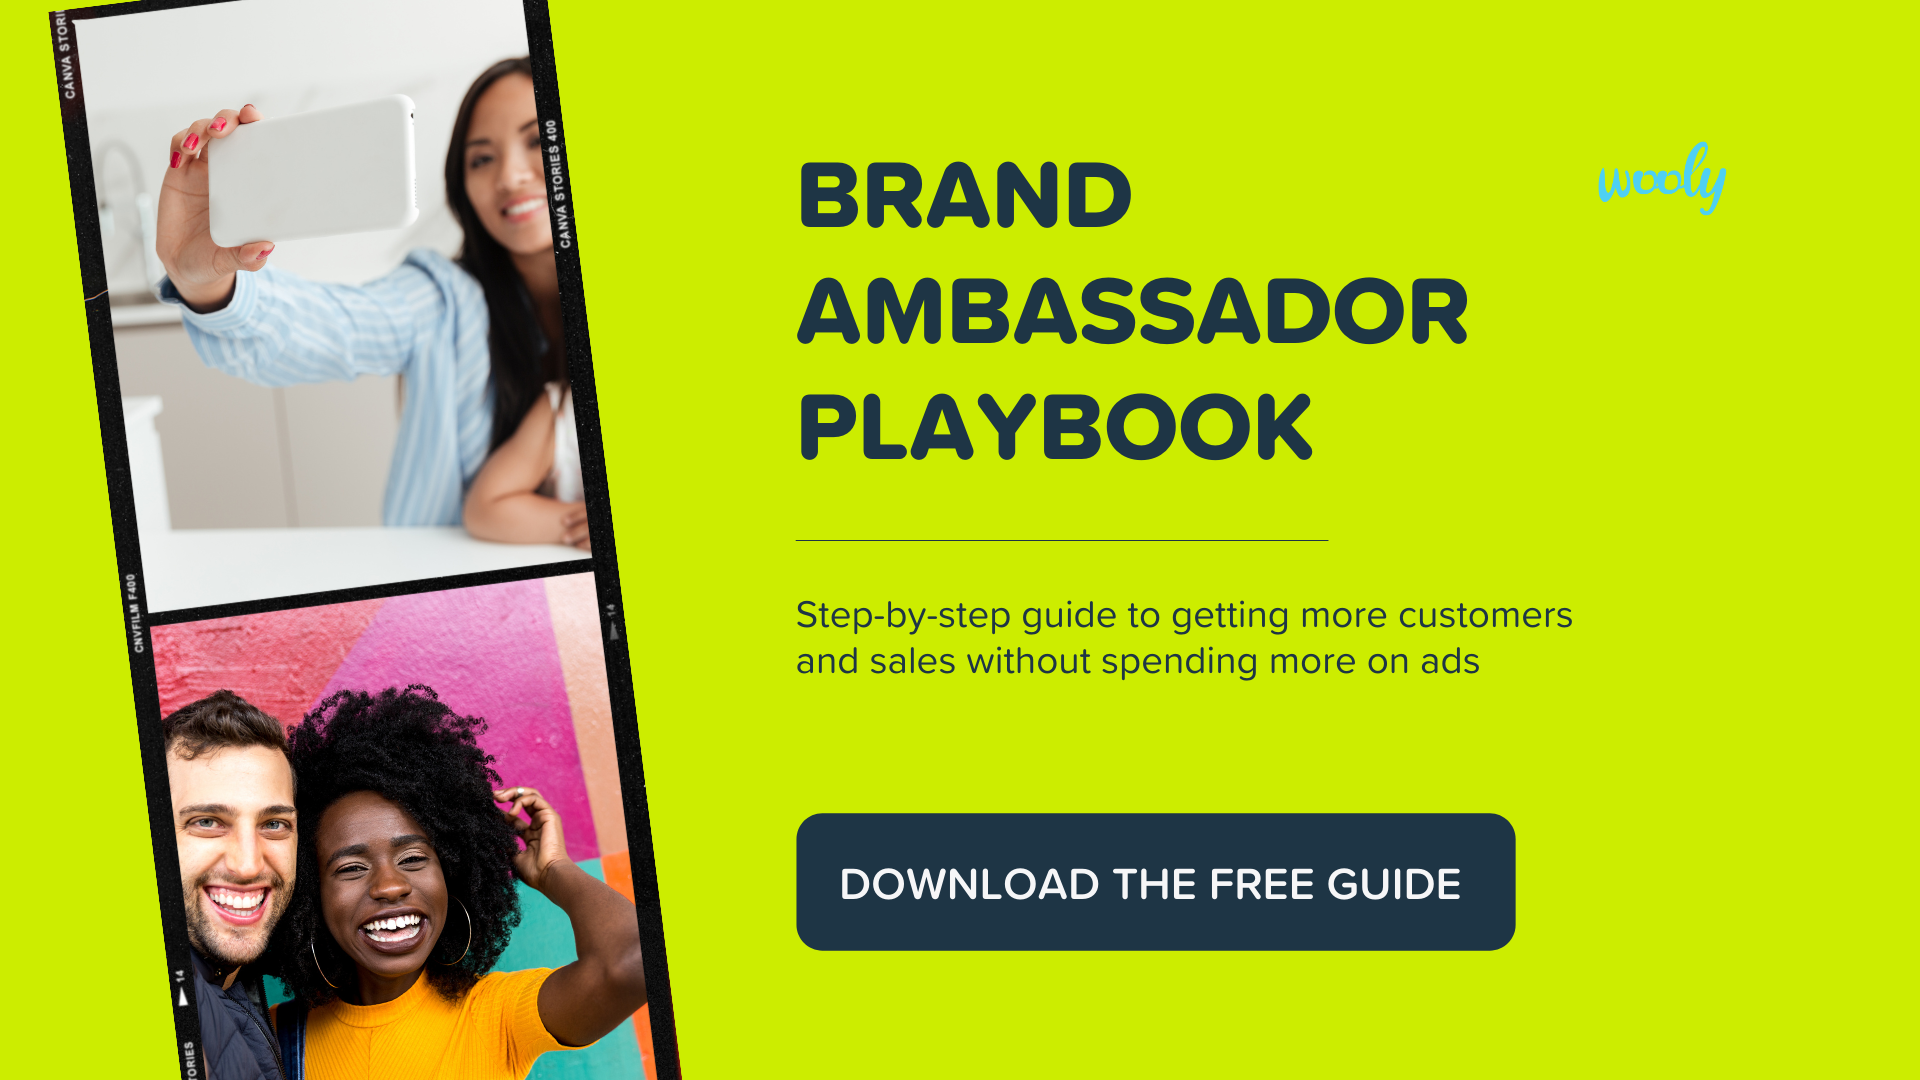 download the brand ambassador playbook and detailed guide